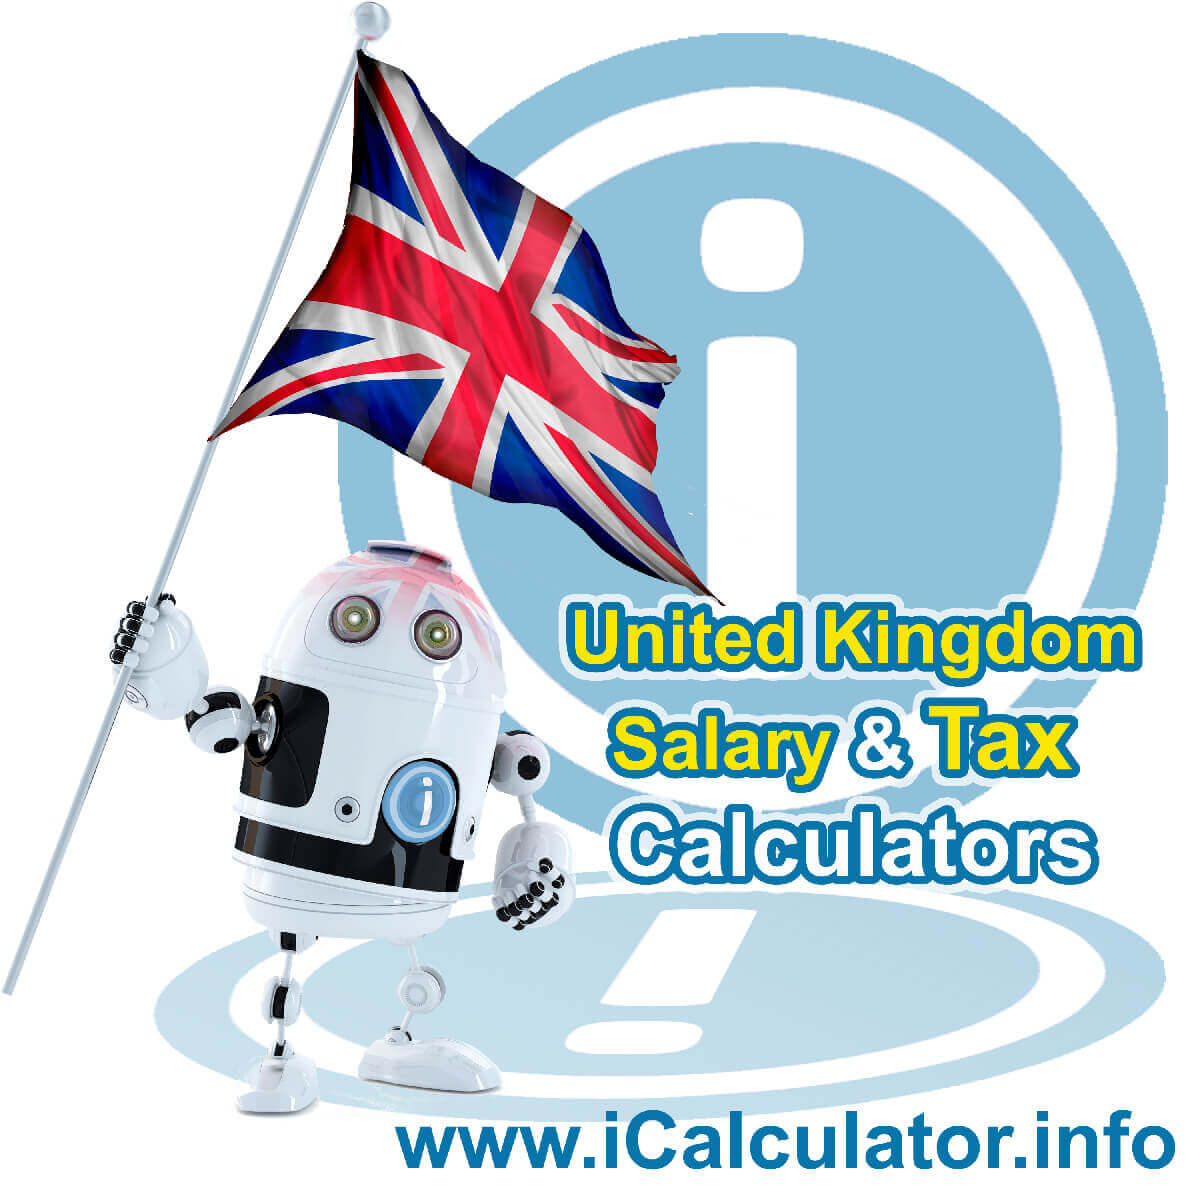 If you earn £ 13,500.00 per year, what is your take home pay? In this £ 13,500.00 salary example we explain how your tax, PAYe and National Insurance Contributions are calculated